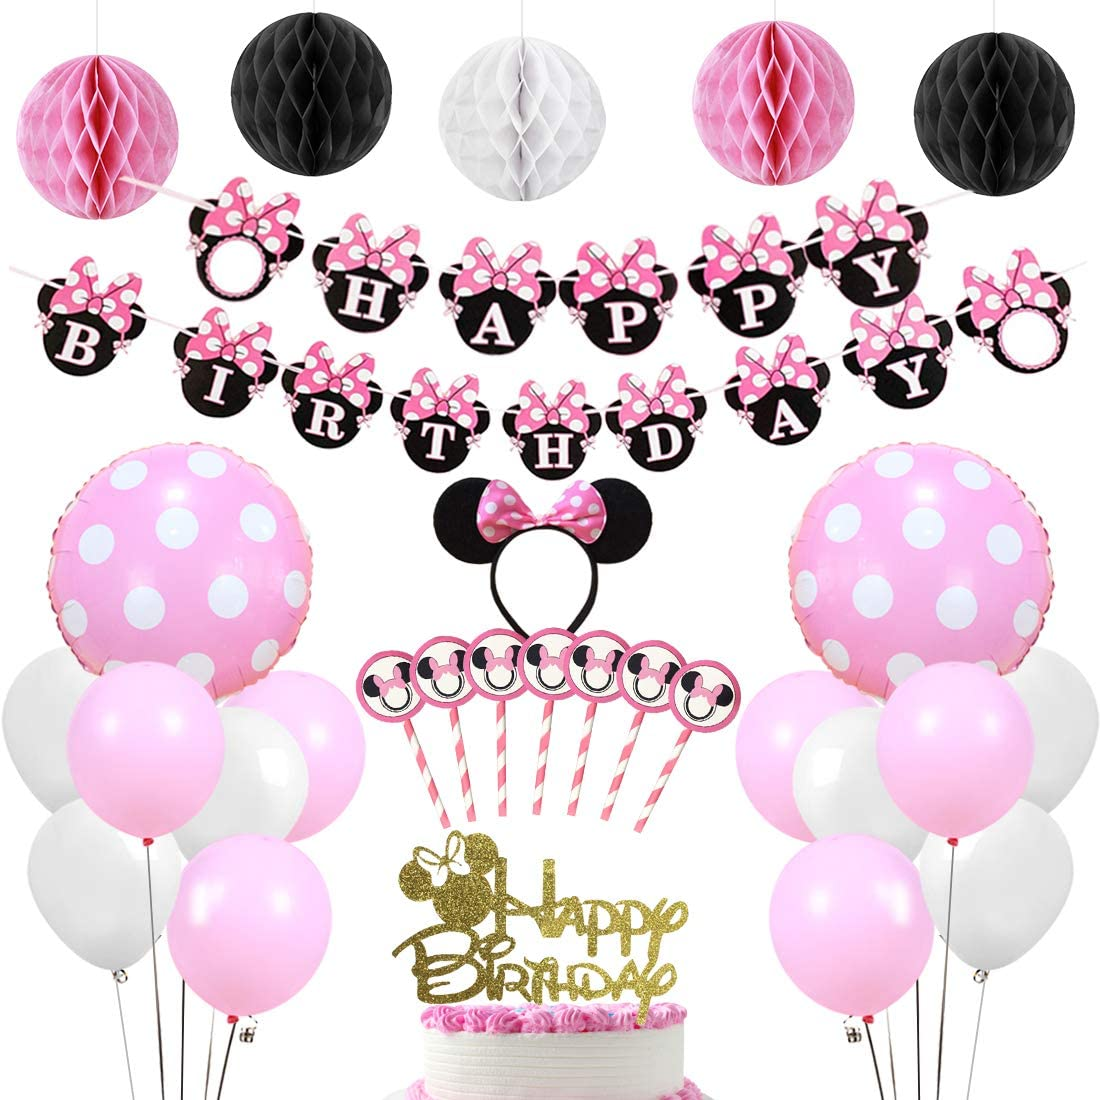 Pink Happy Birthday Banner Cake Topper Honeycomb Balls for Minnie Themed Party Supplies Birthday Party Decorations Themed of Minnie Mouse for Girls